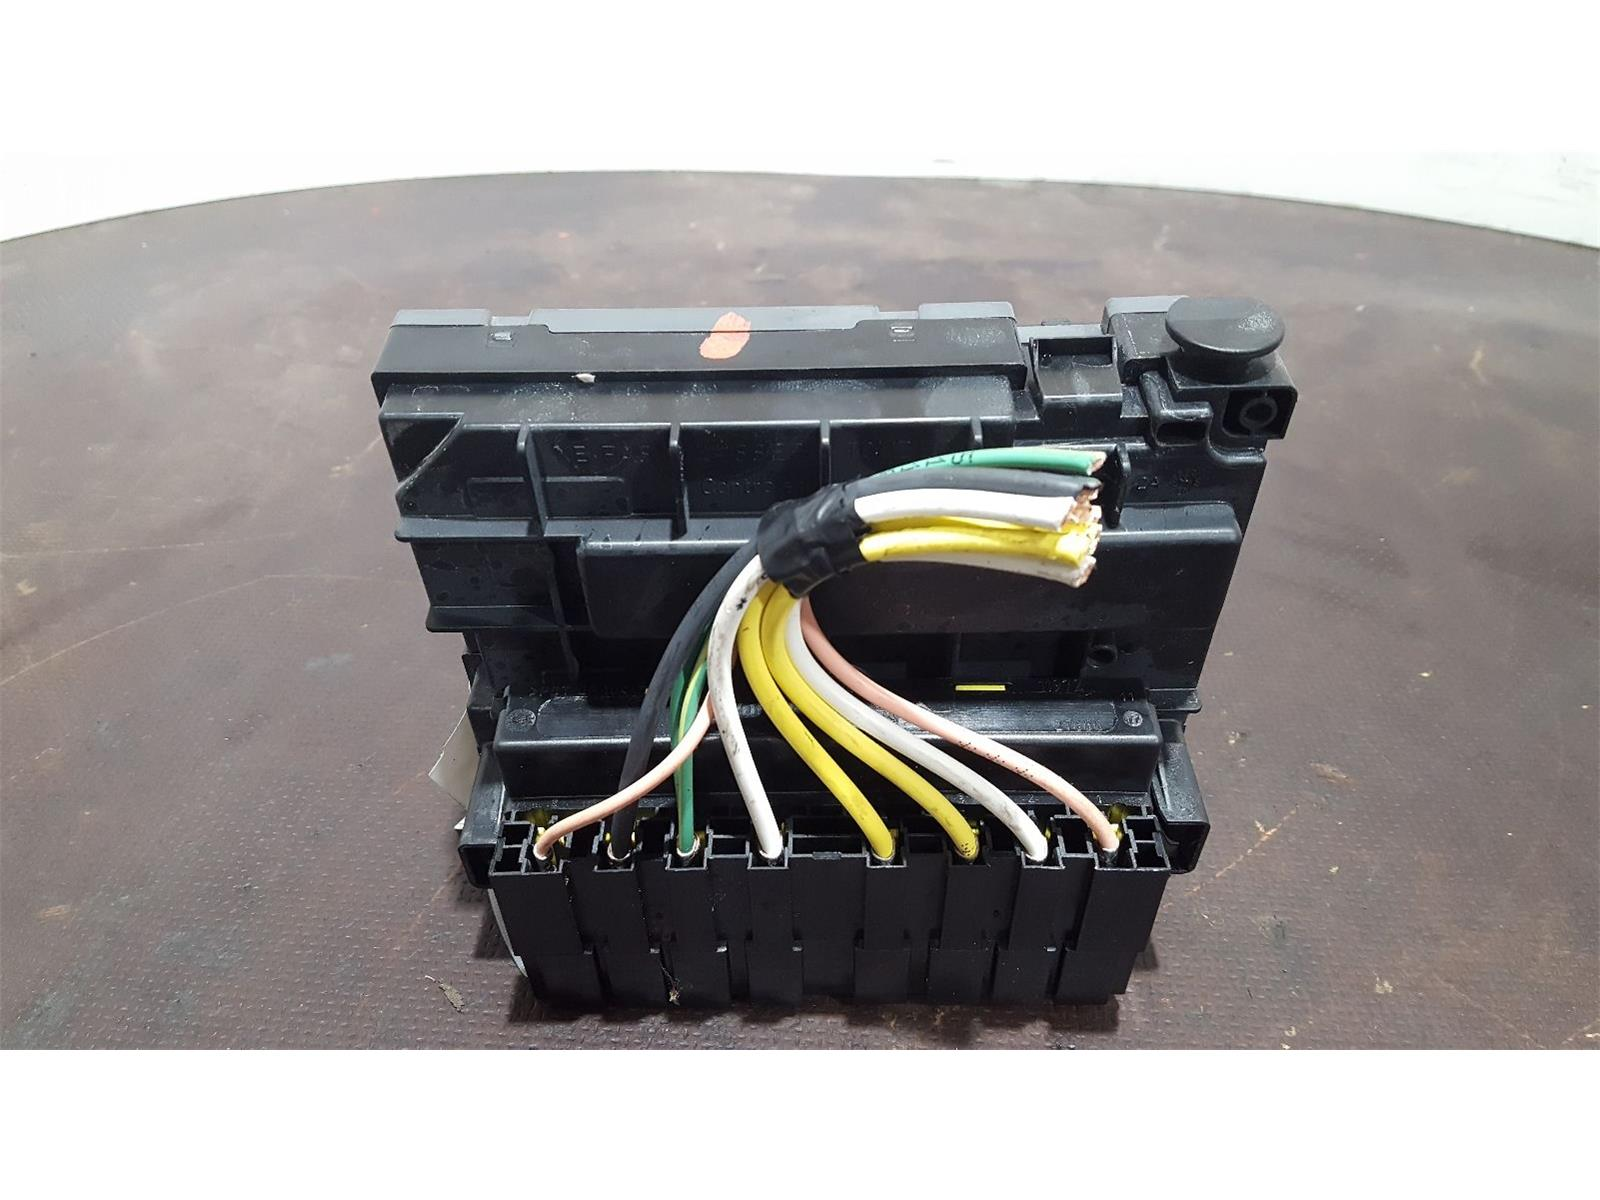 Citroen Berlingo Multispace 2008 To 2012 XTR Fuse and Relay Box 1 used and  spare parts at Combellack Vehicle Recyclers